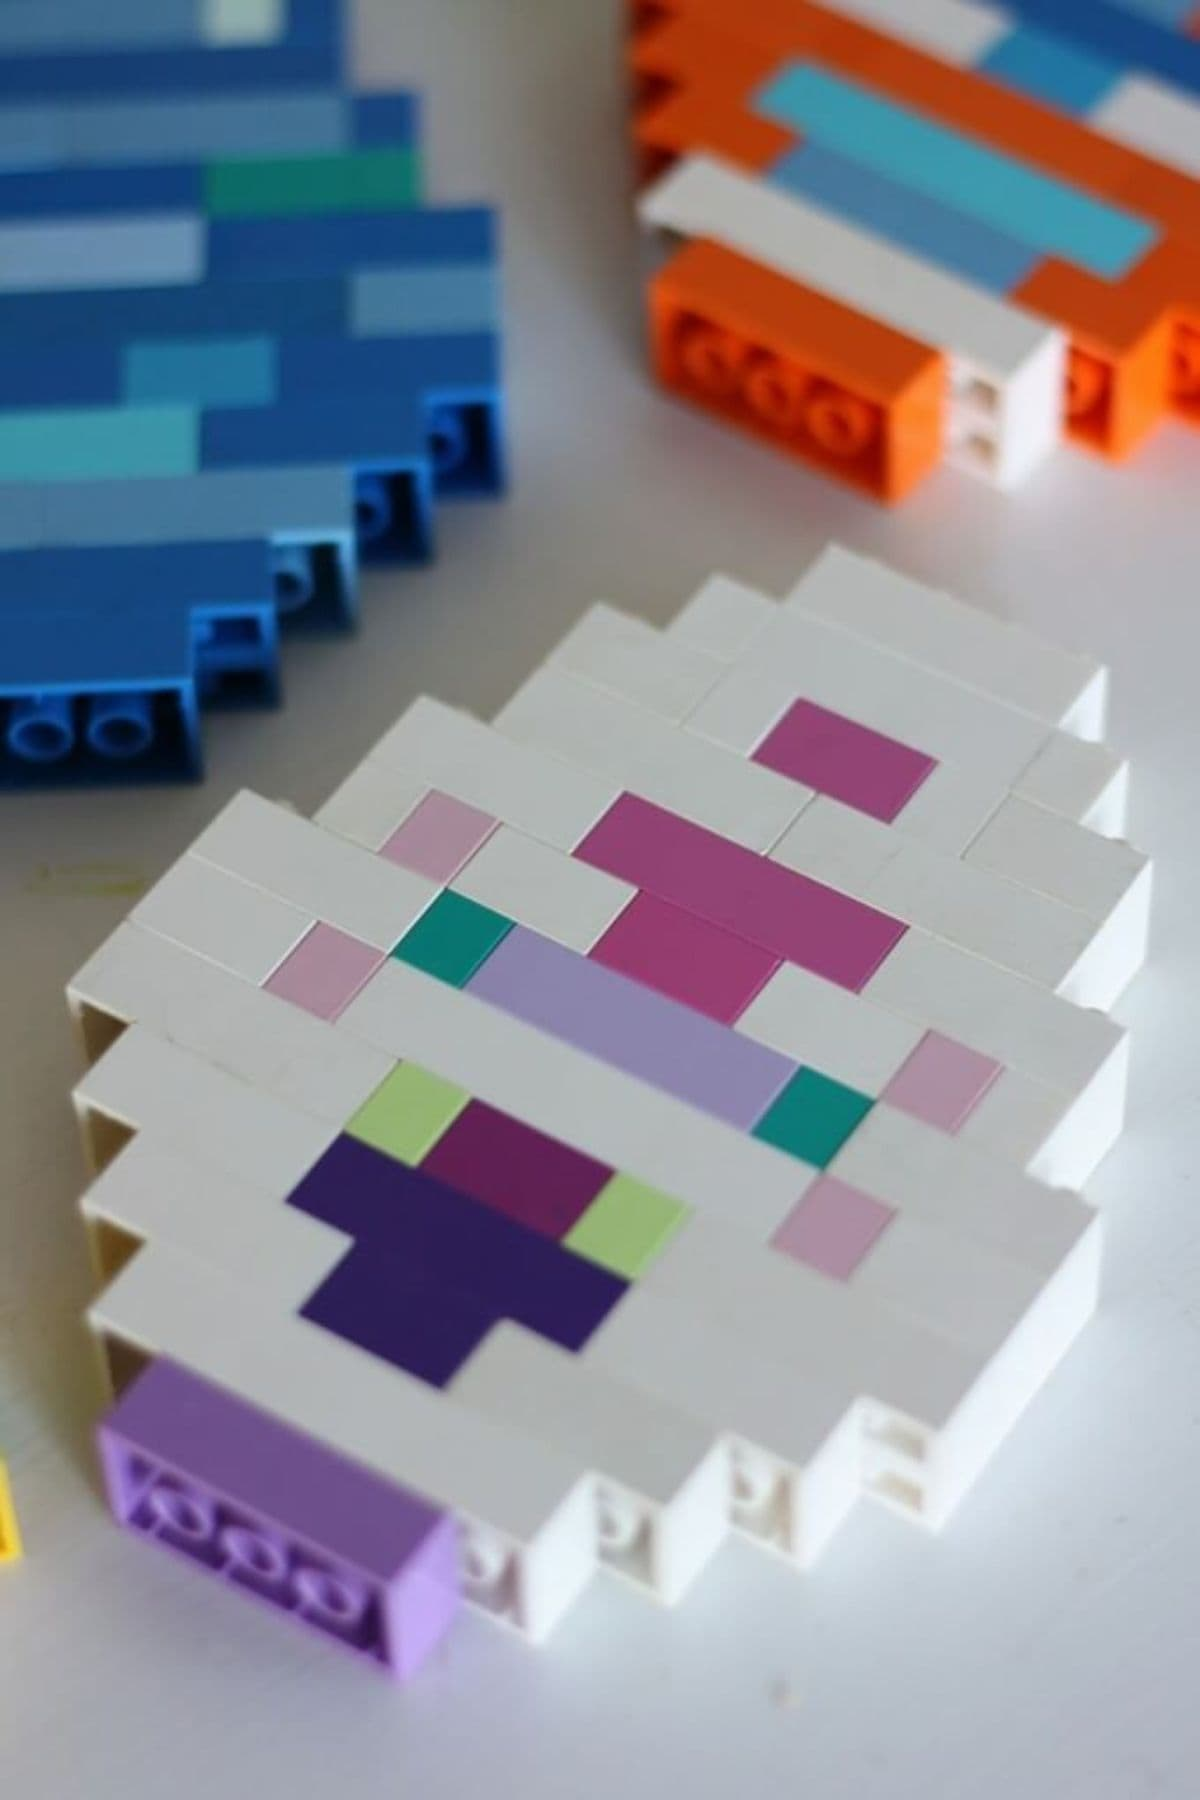 A blue egg, purple and white egg, and orange white and blue egg all made of lego are laying down on the surface